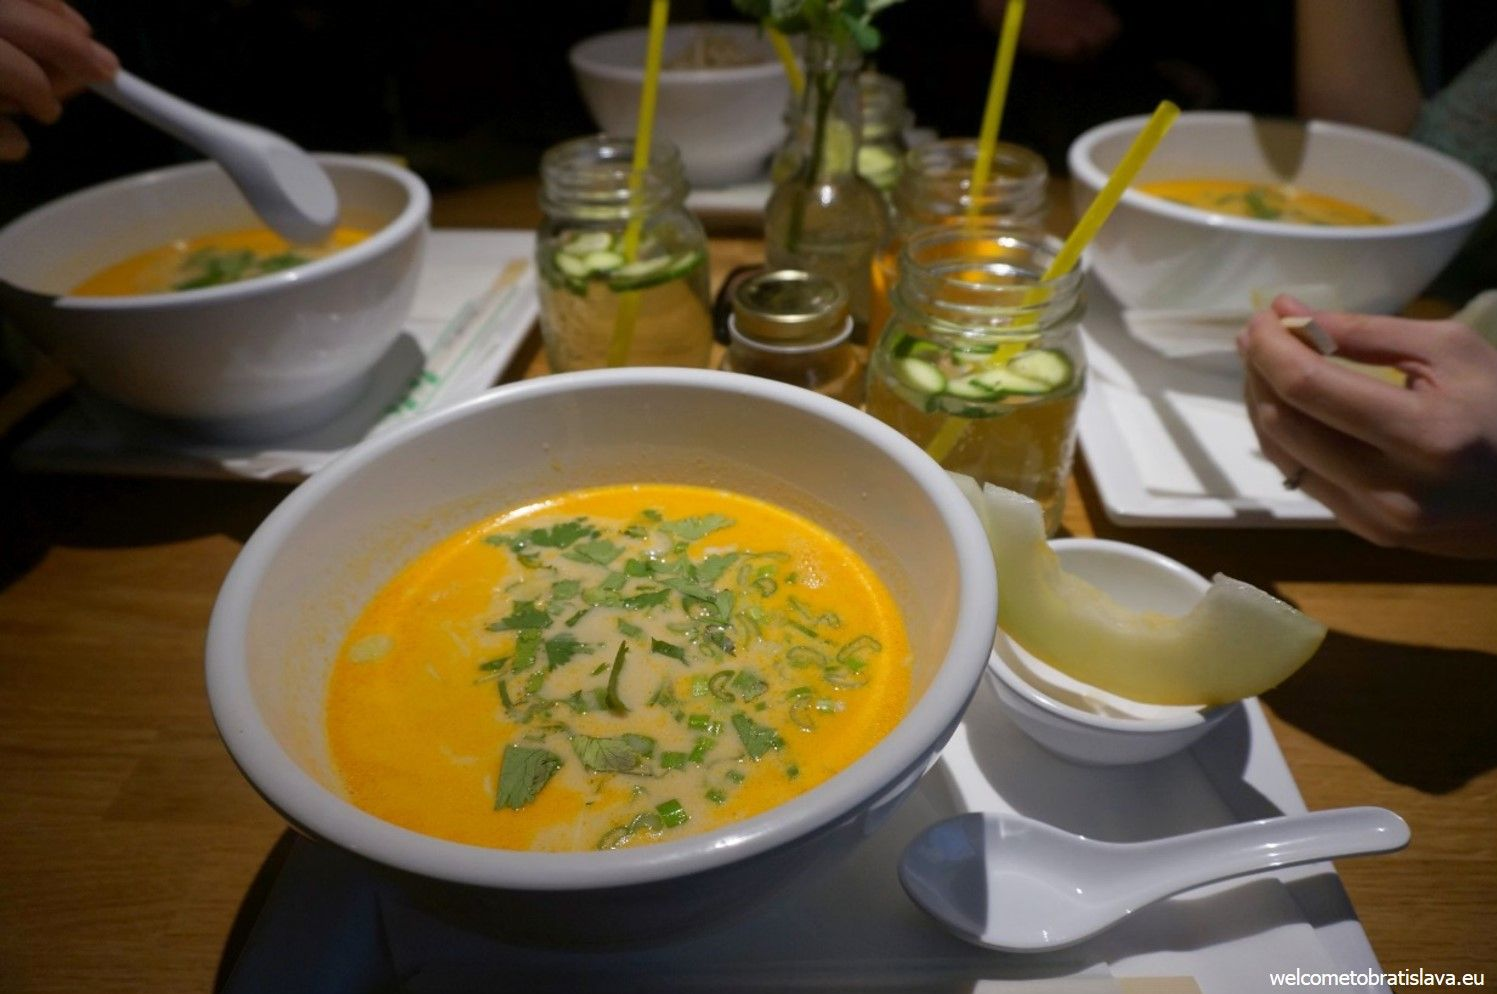 Coconut soup with chicken and noodles